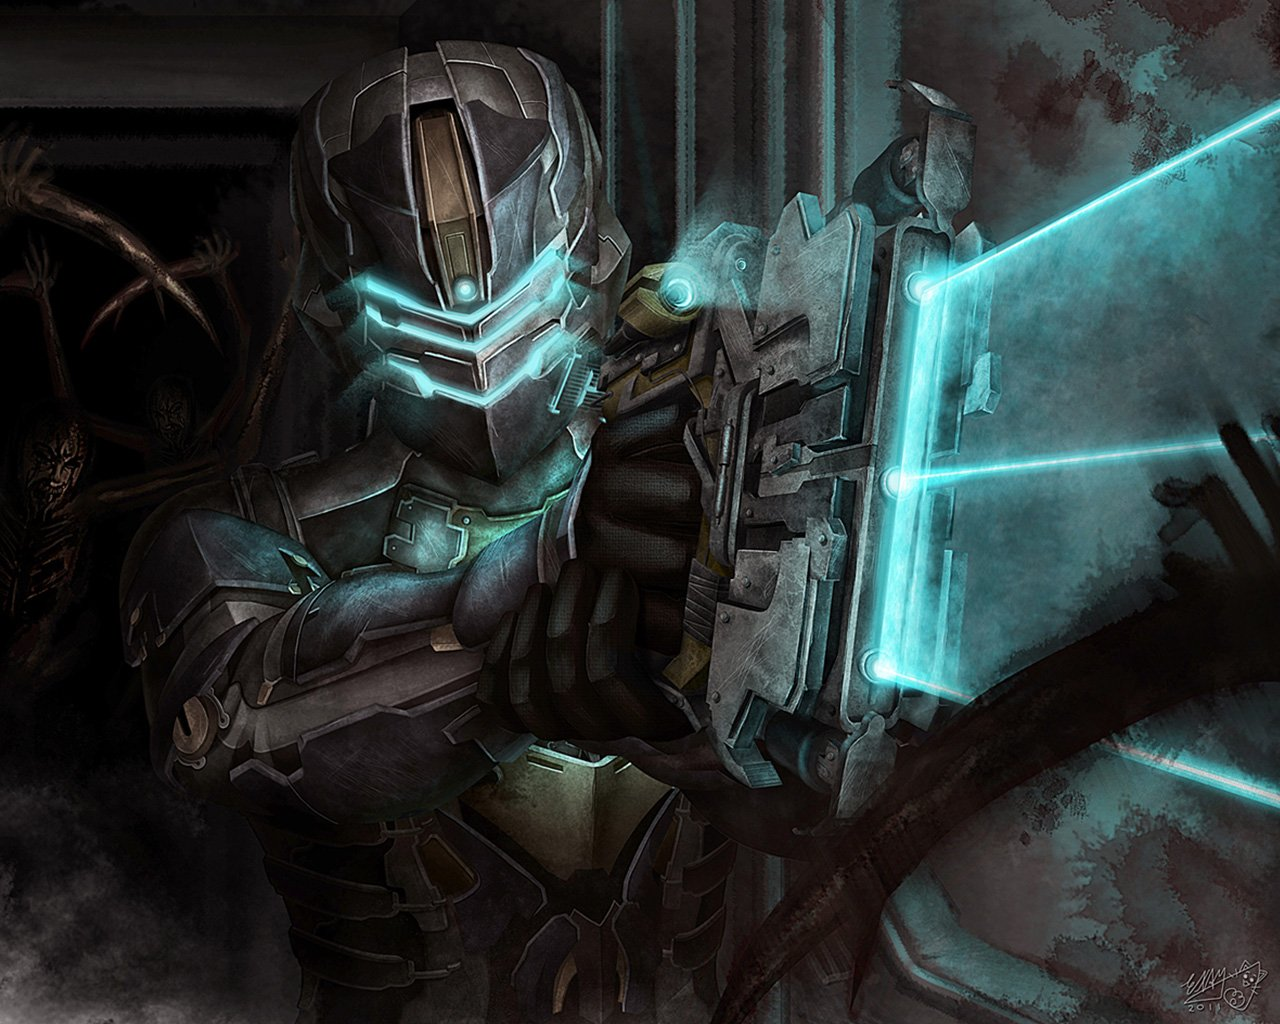 Dead Space 2 Wallpaper in 1280x1024 1280x1024